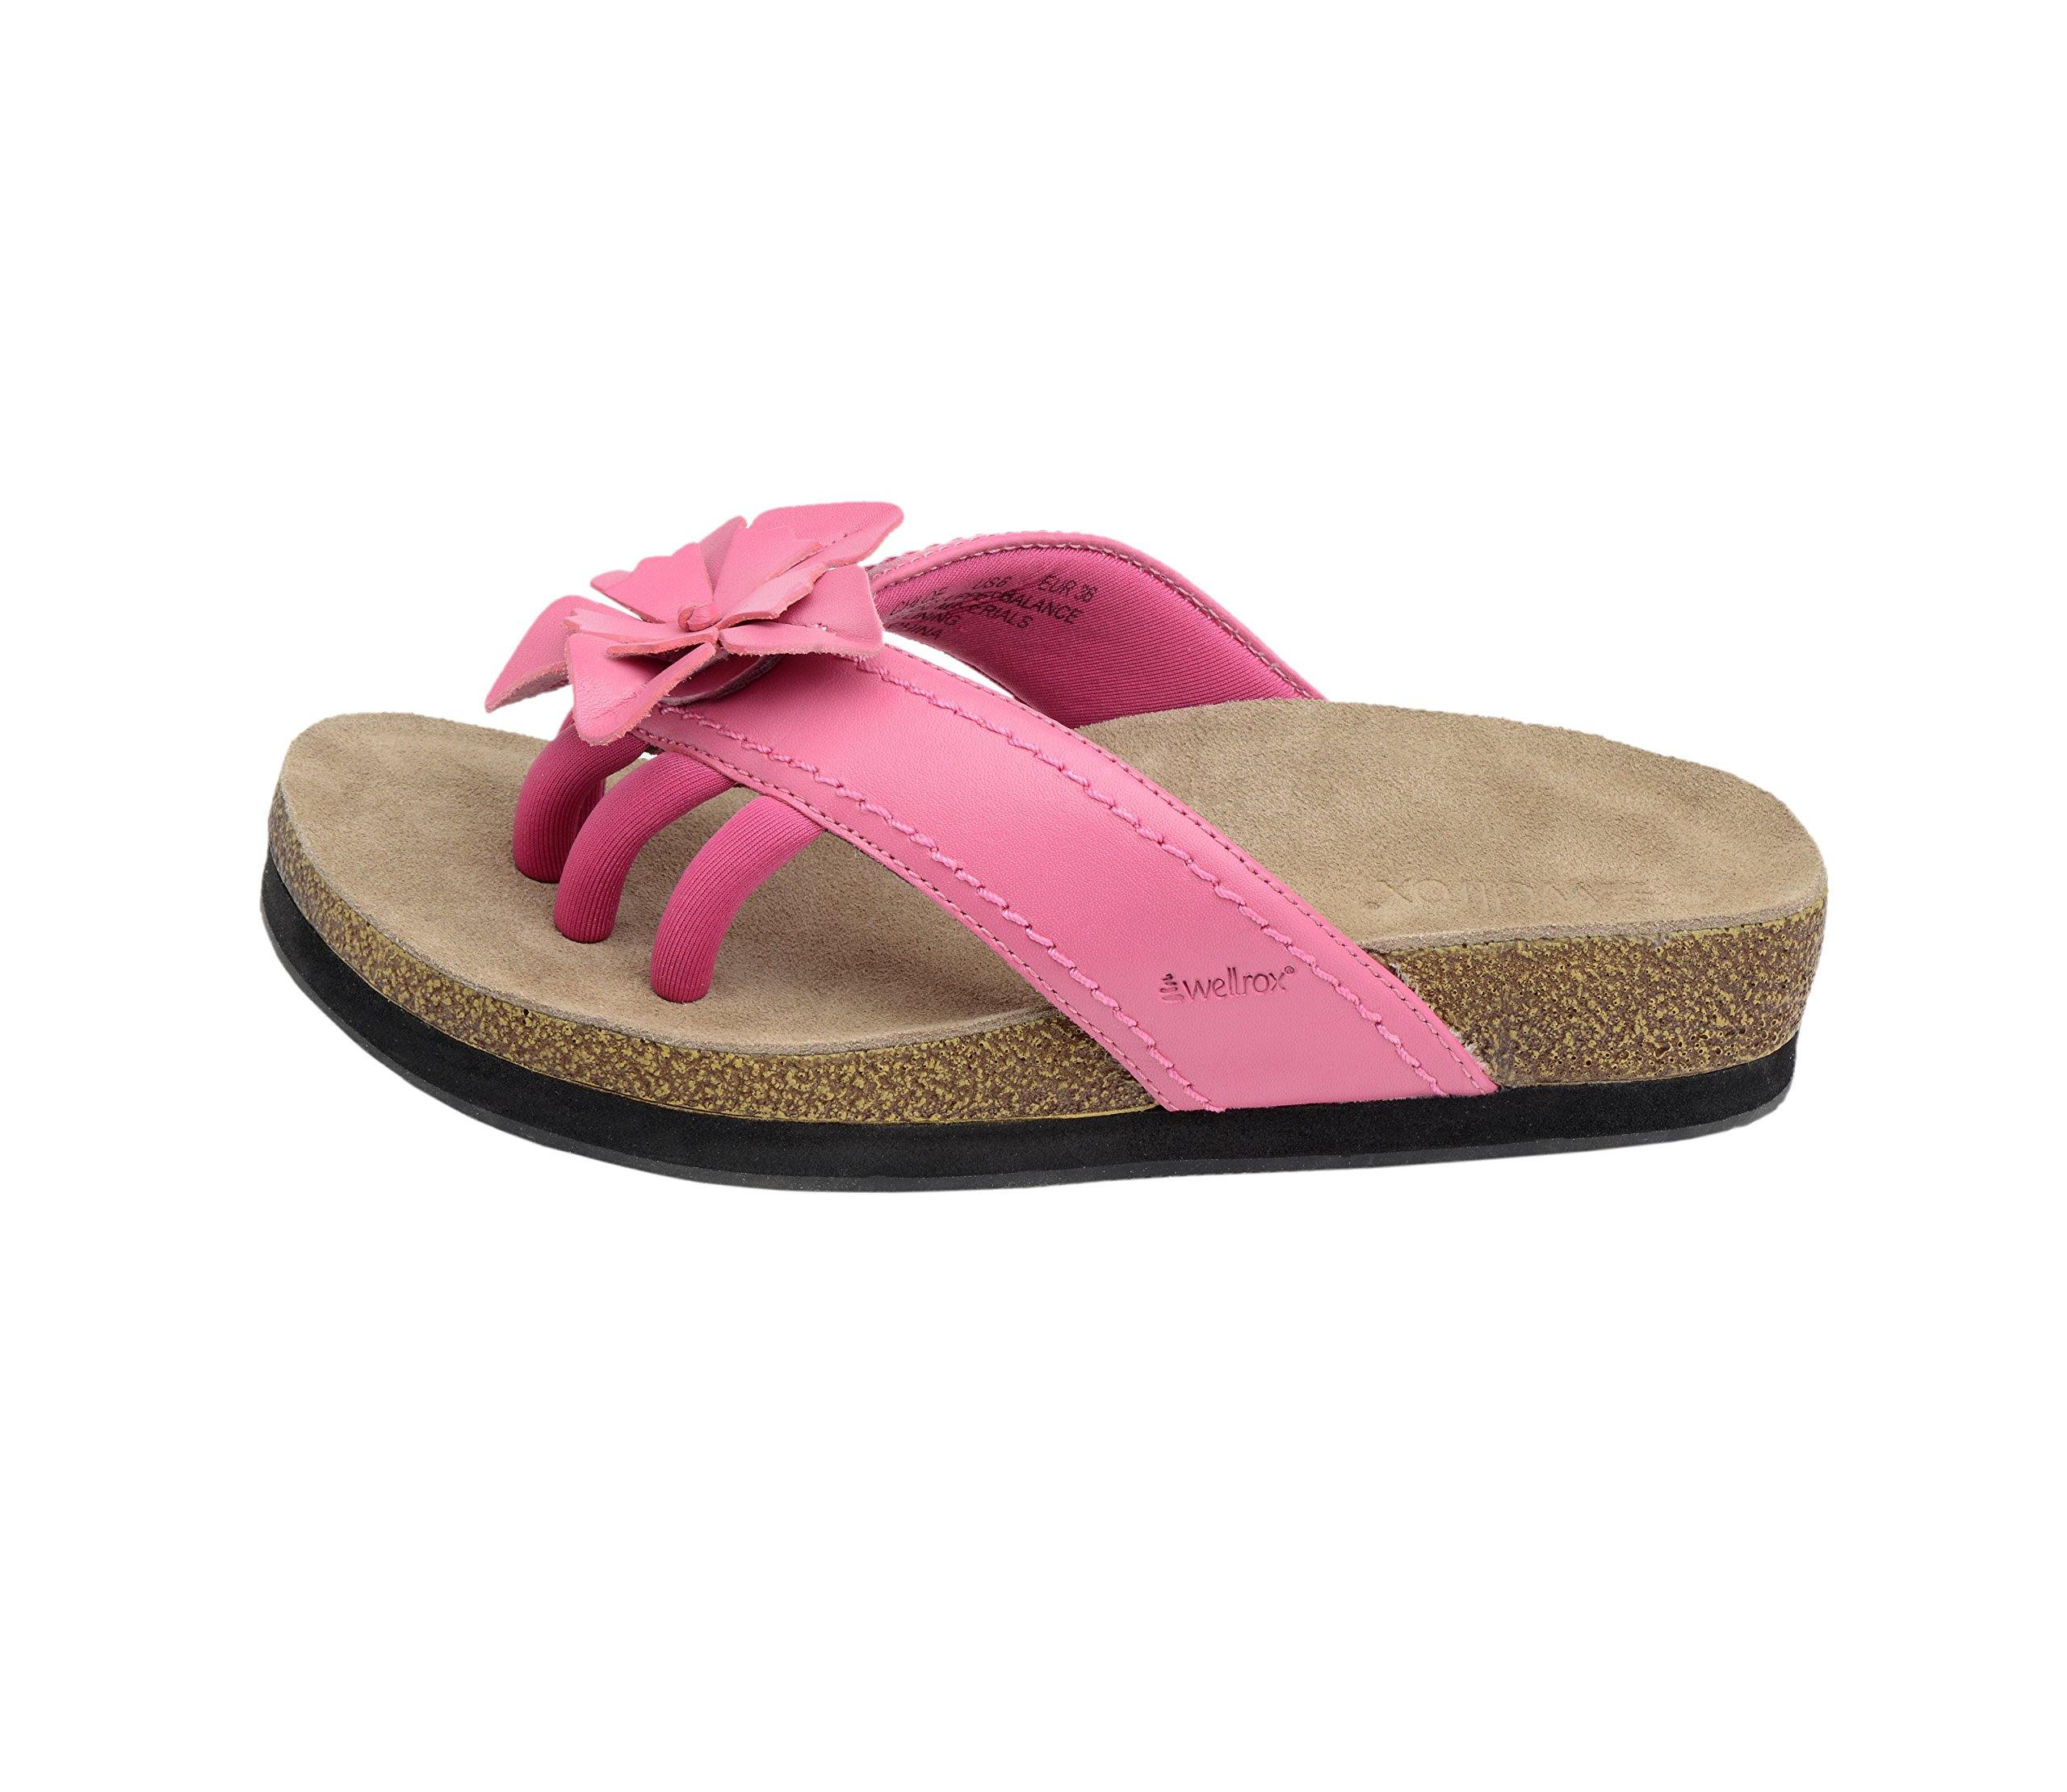 Wellrox Women's Terra-Chloe Hot Pink Casual Sandal 11 by Wellrox (Image #2)